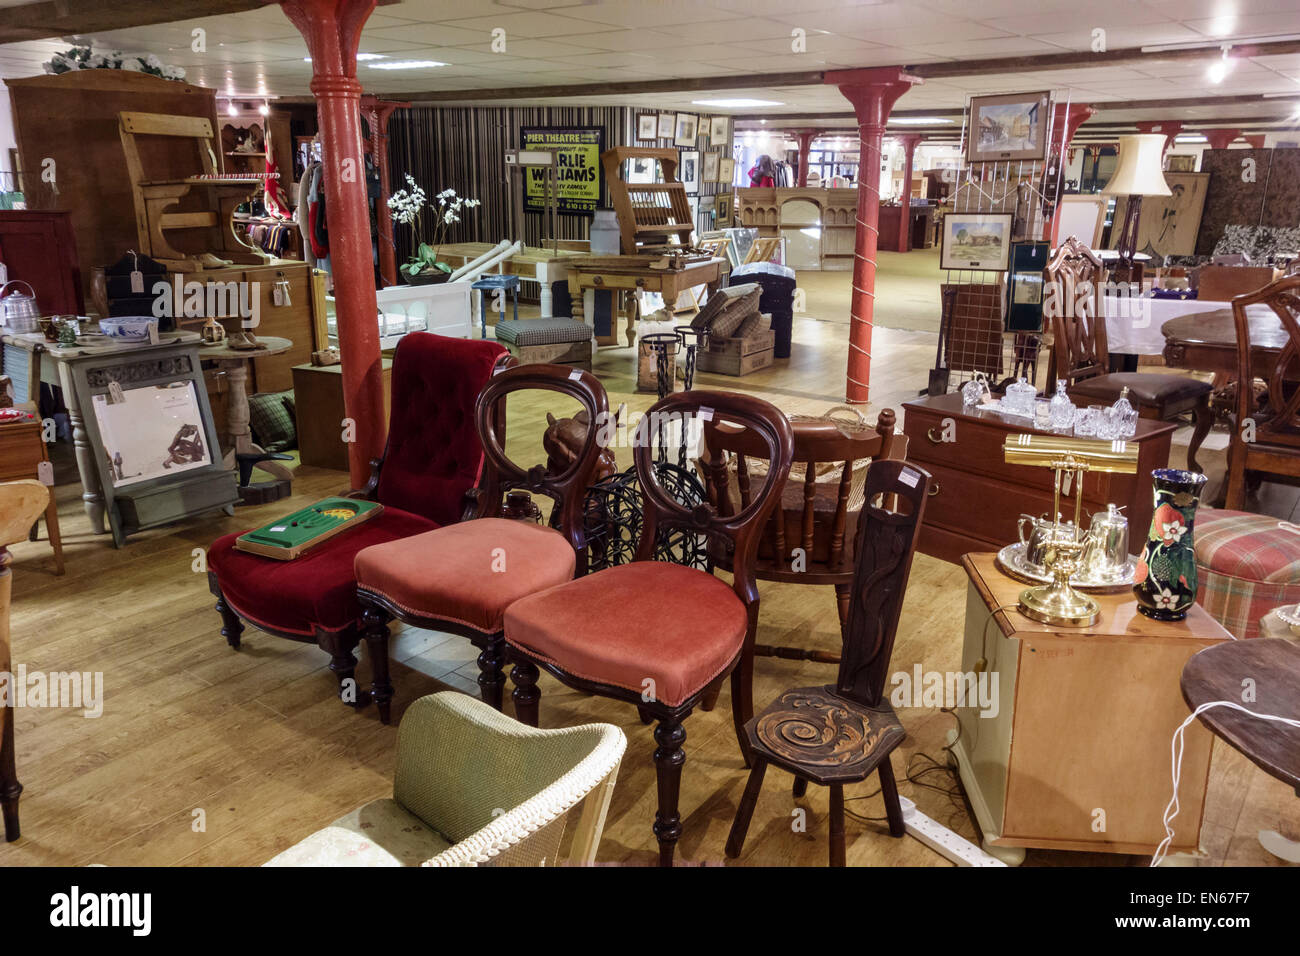 Secondhand furniture shop in Stroud, Gloucestershire, UK - Stock Image